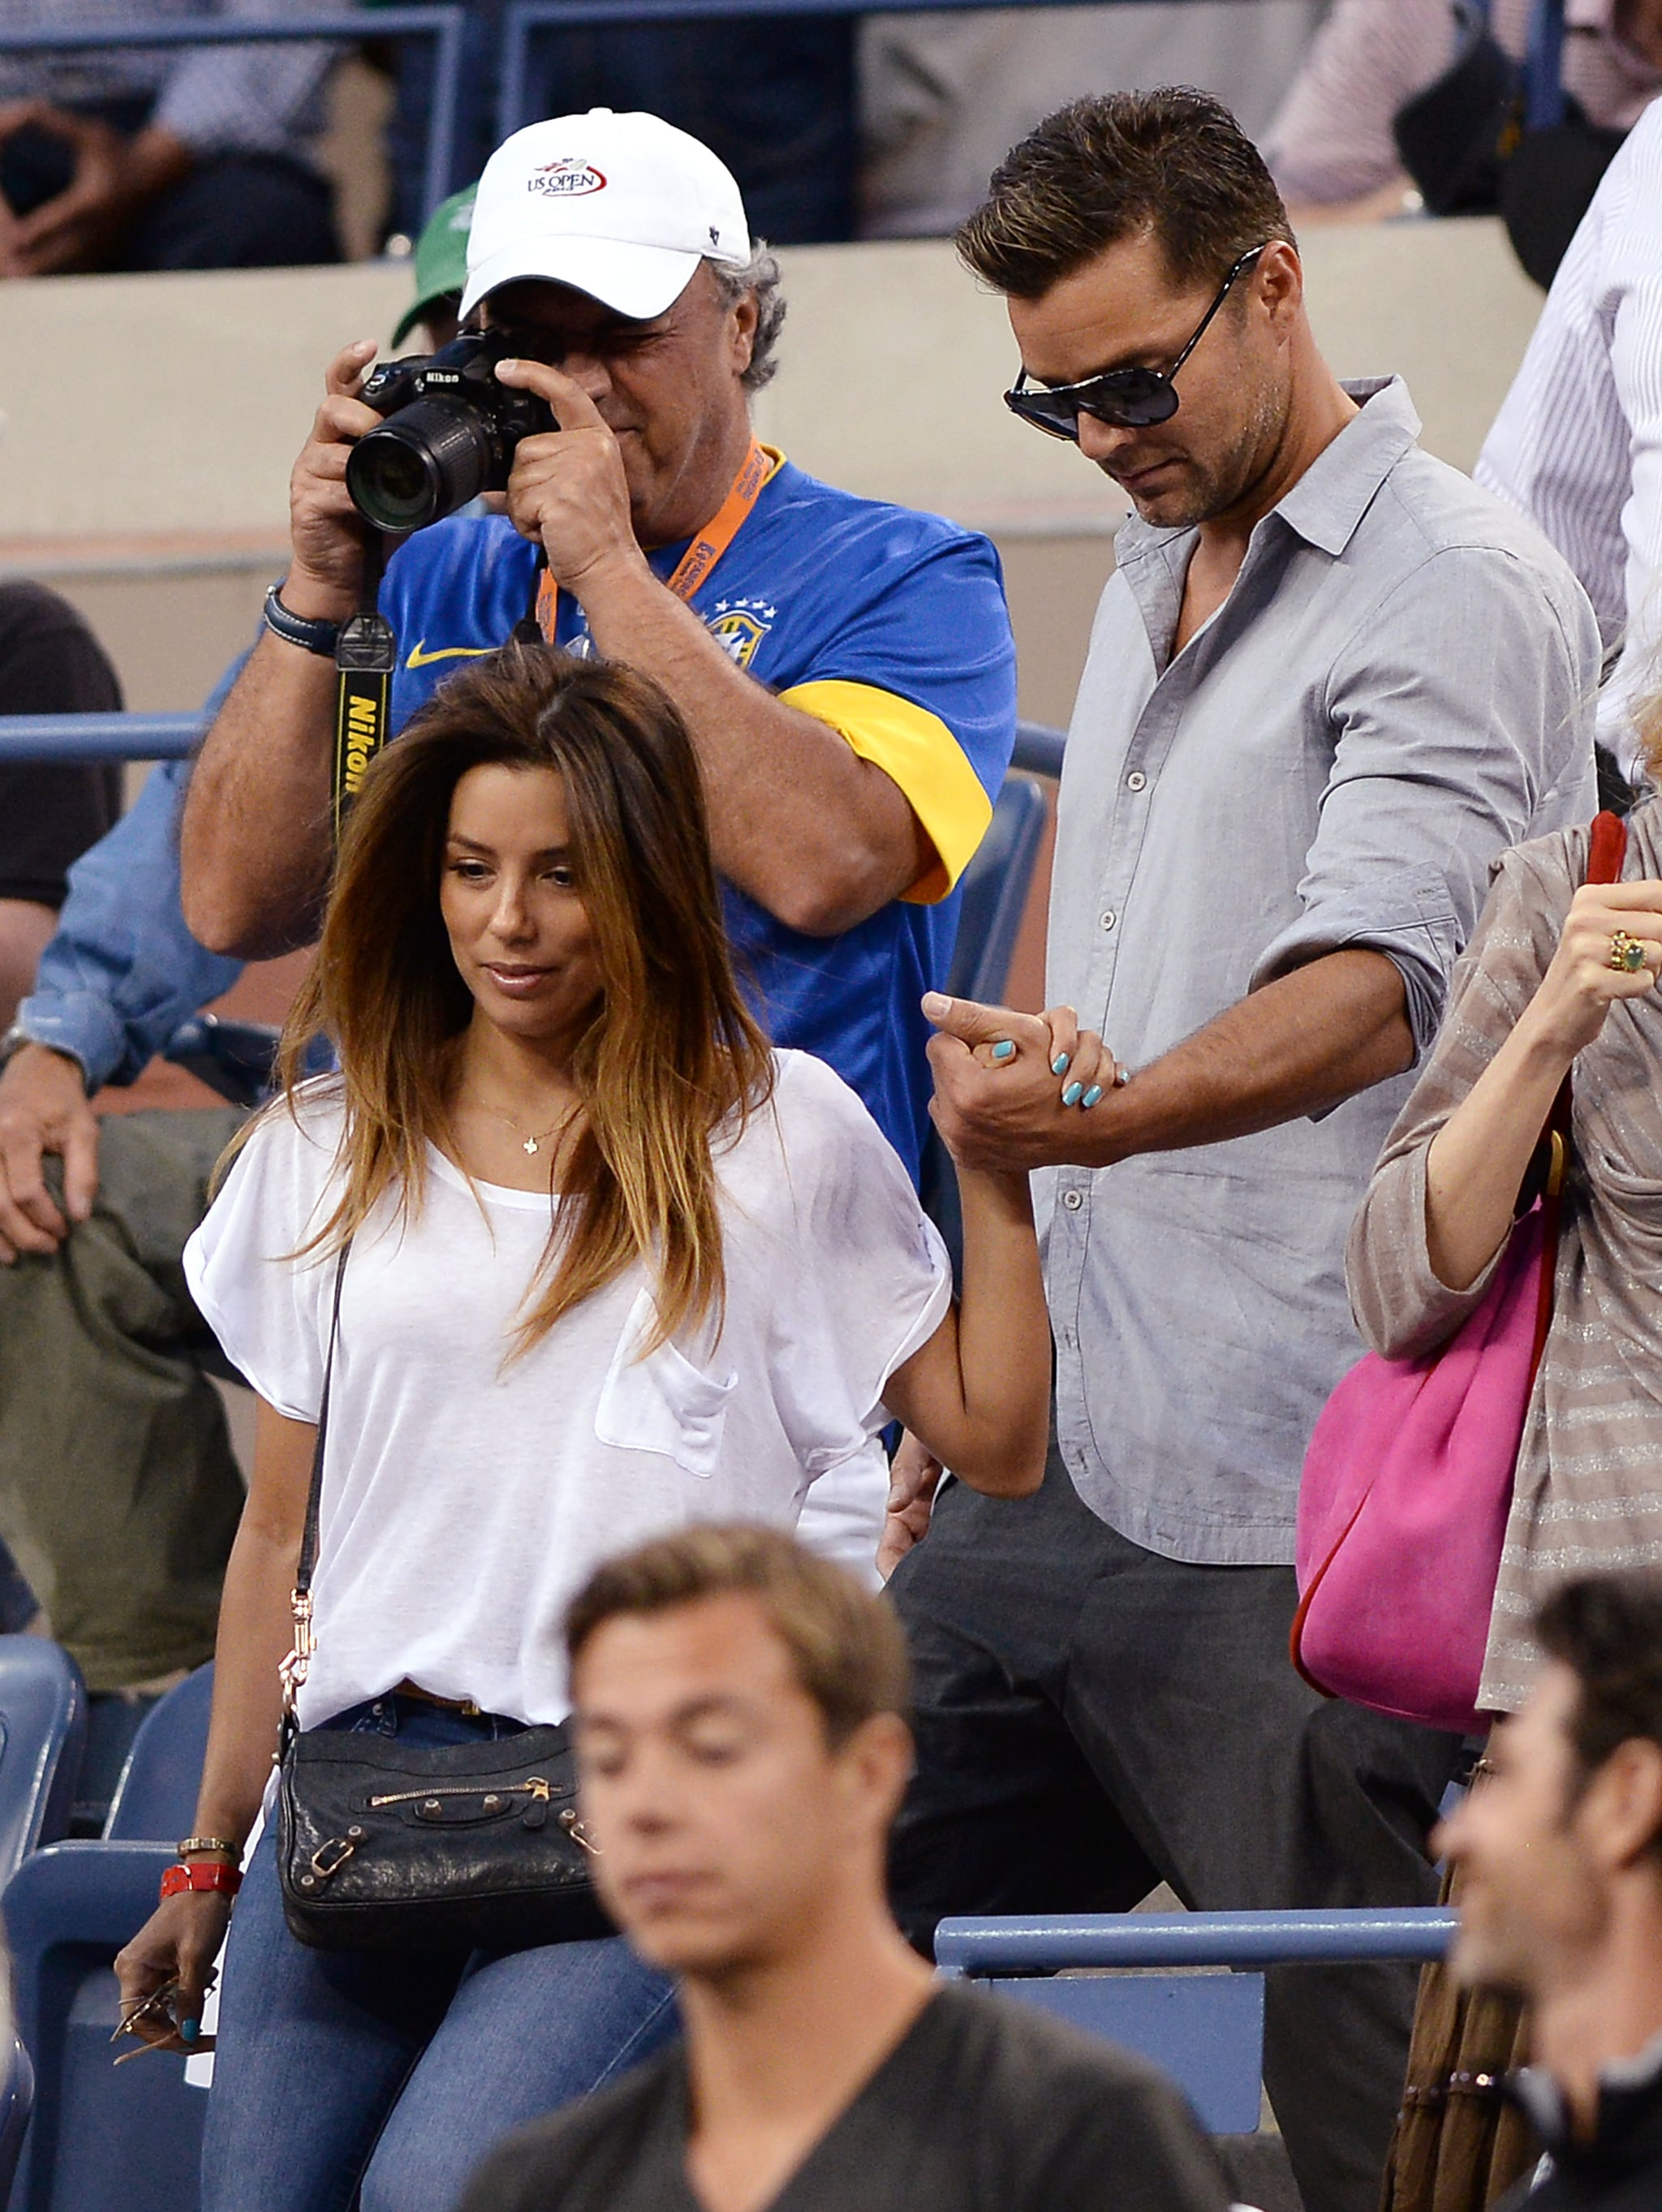 Eva Longoria stuck to basics in a white tee, dark denim, and a black crossbody bag at the US Open in NYC.